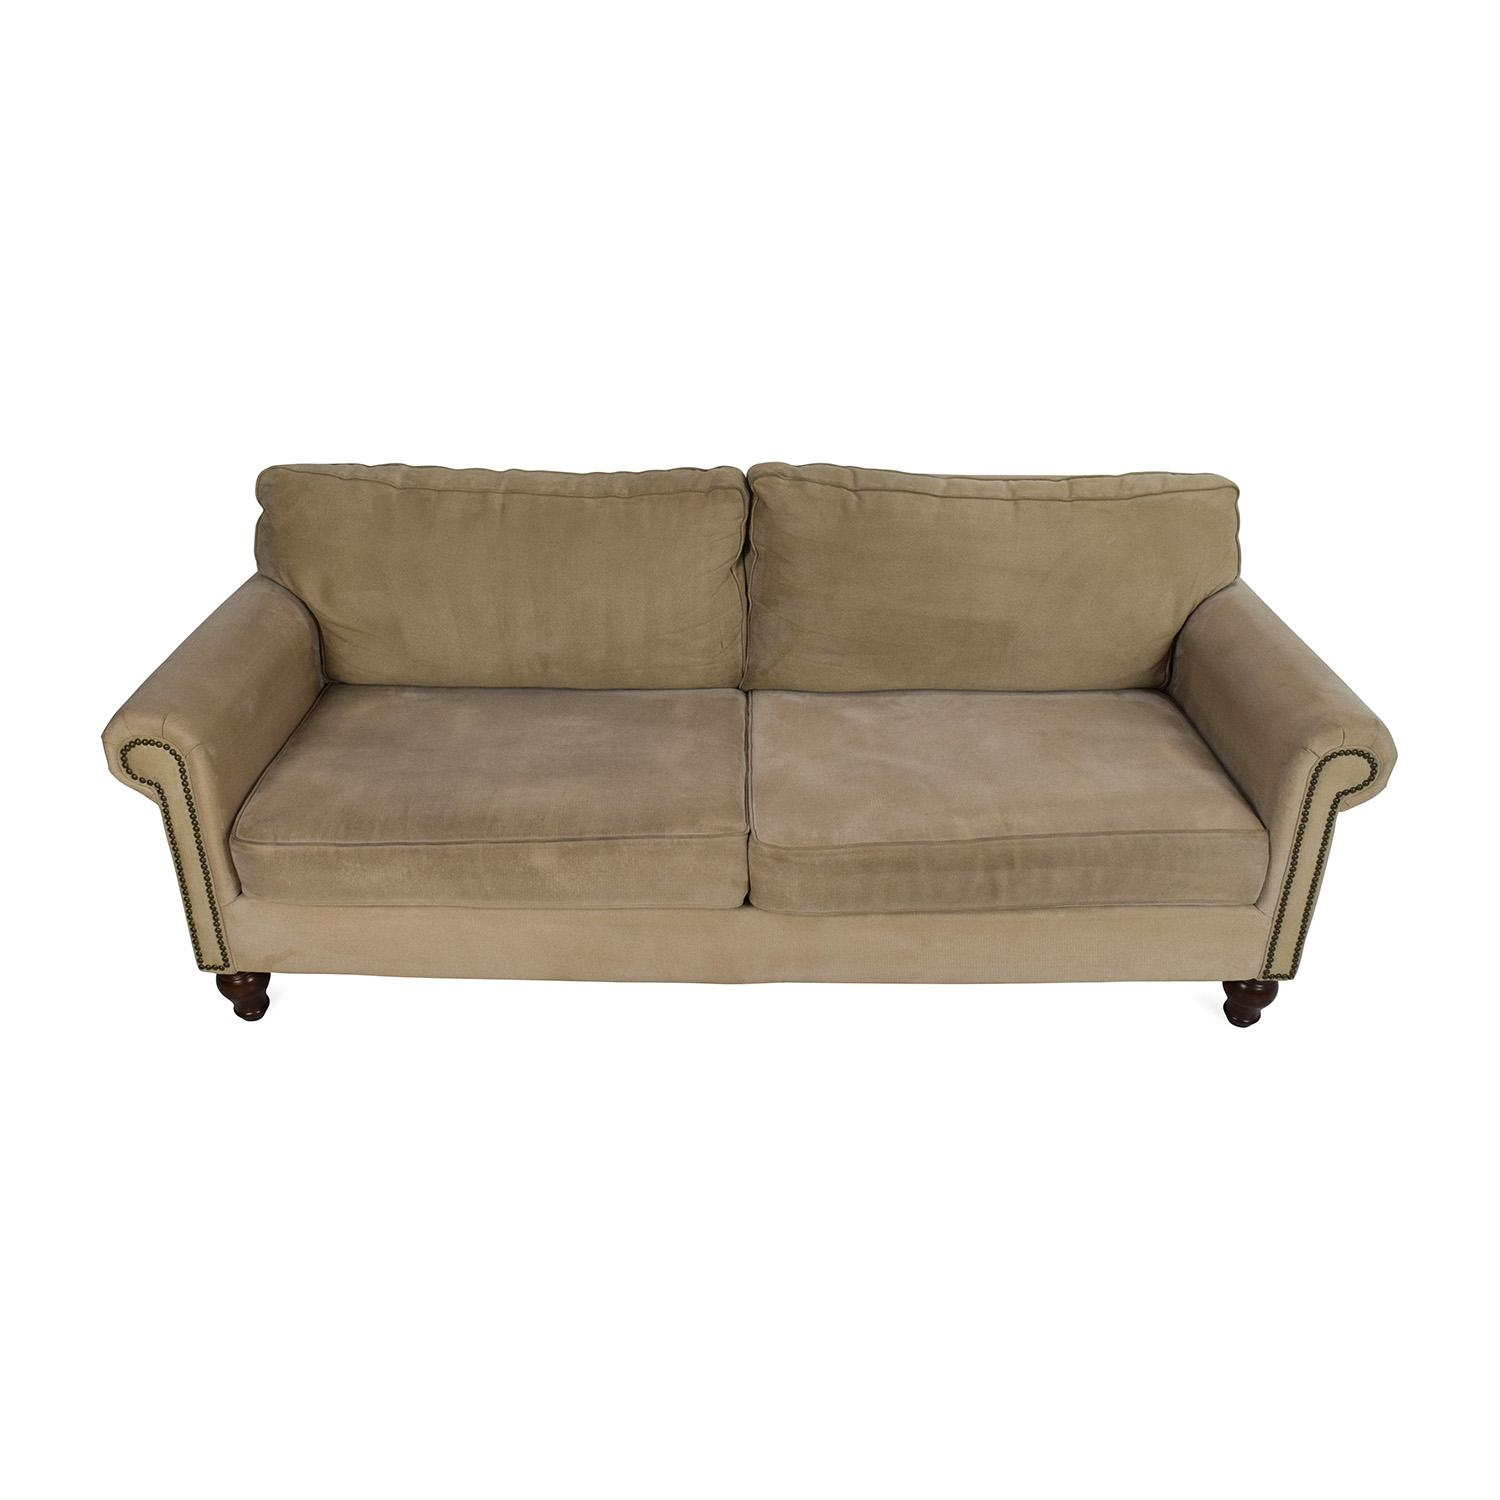 80% Off - Pier 1 Imports Pier 1 Alton Rolled Arm Sofa / Sofas intended for Pier 1 Sofa Beds